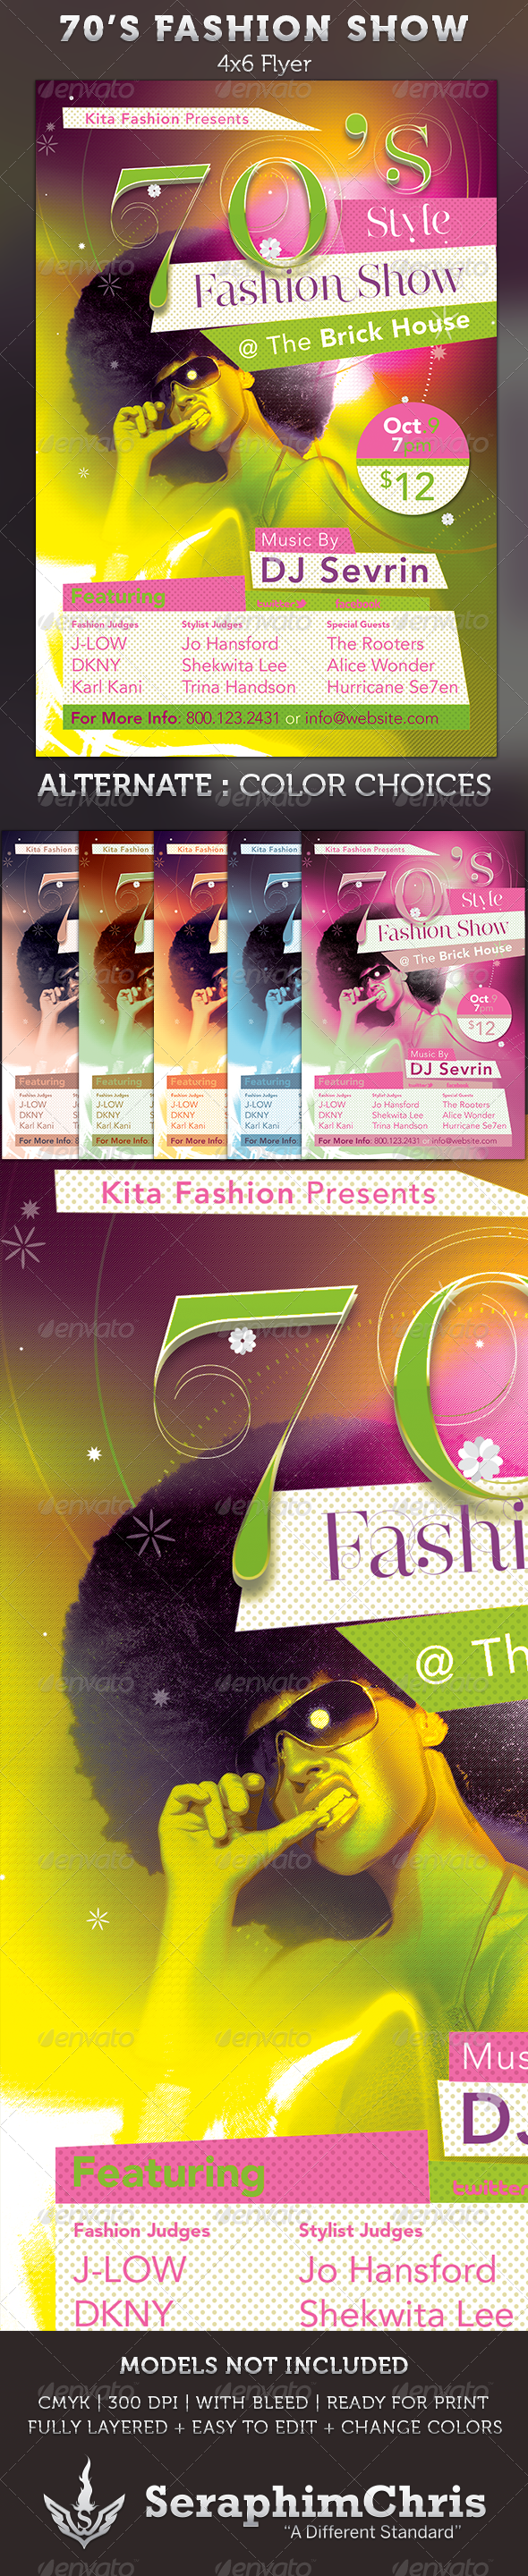 70 s Fashion Show Flyer Template